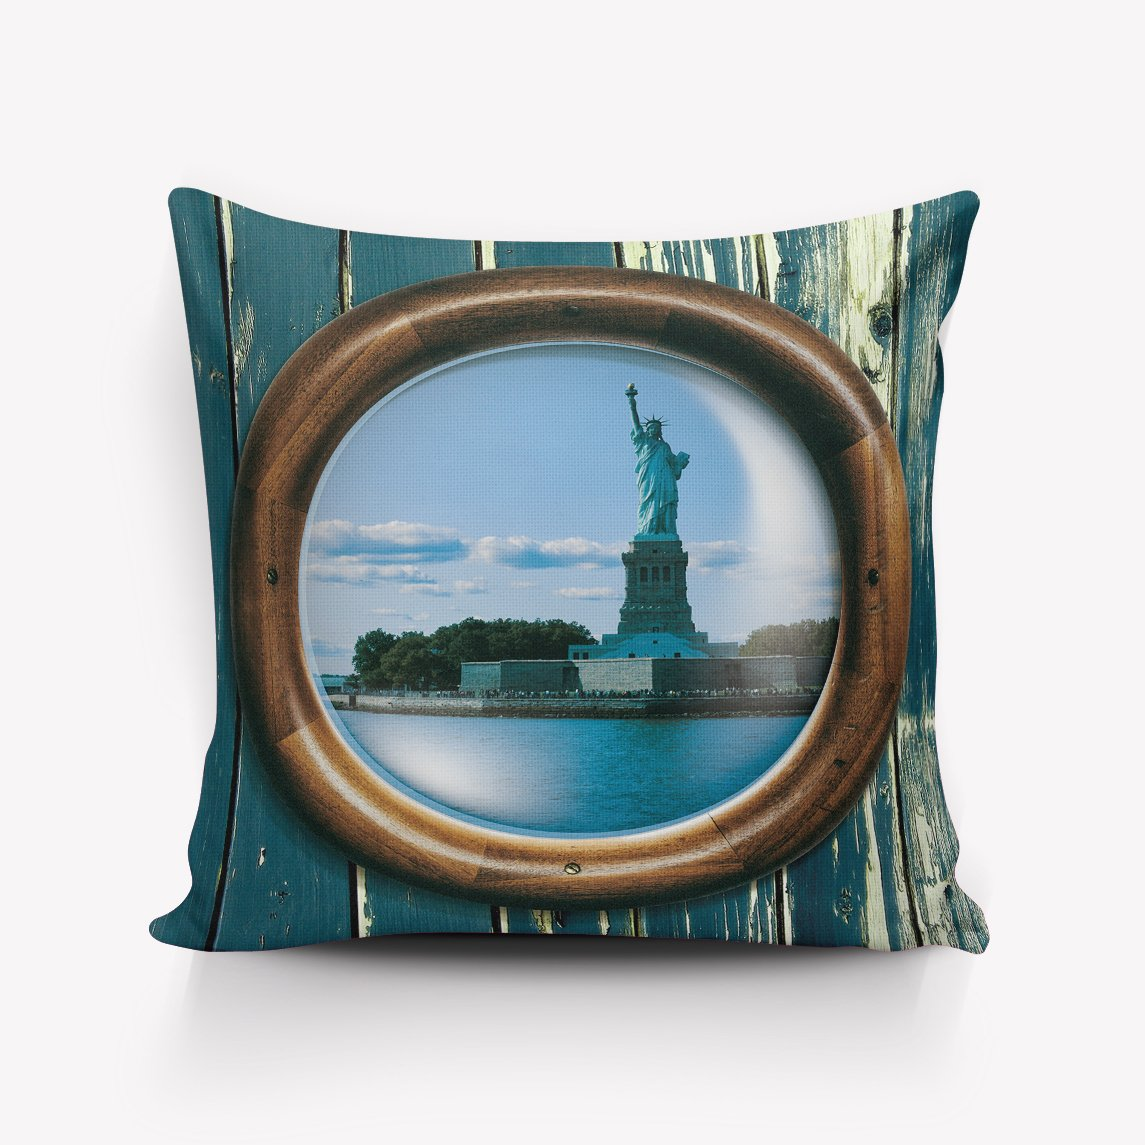 Sea Porthole Window View Sail Boats sailboats Pillowcases Square Cushion Cover for Home Decor 16x16inch Two sides